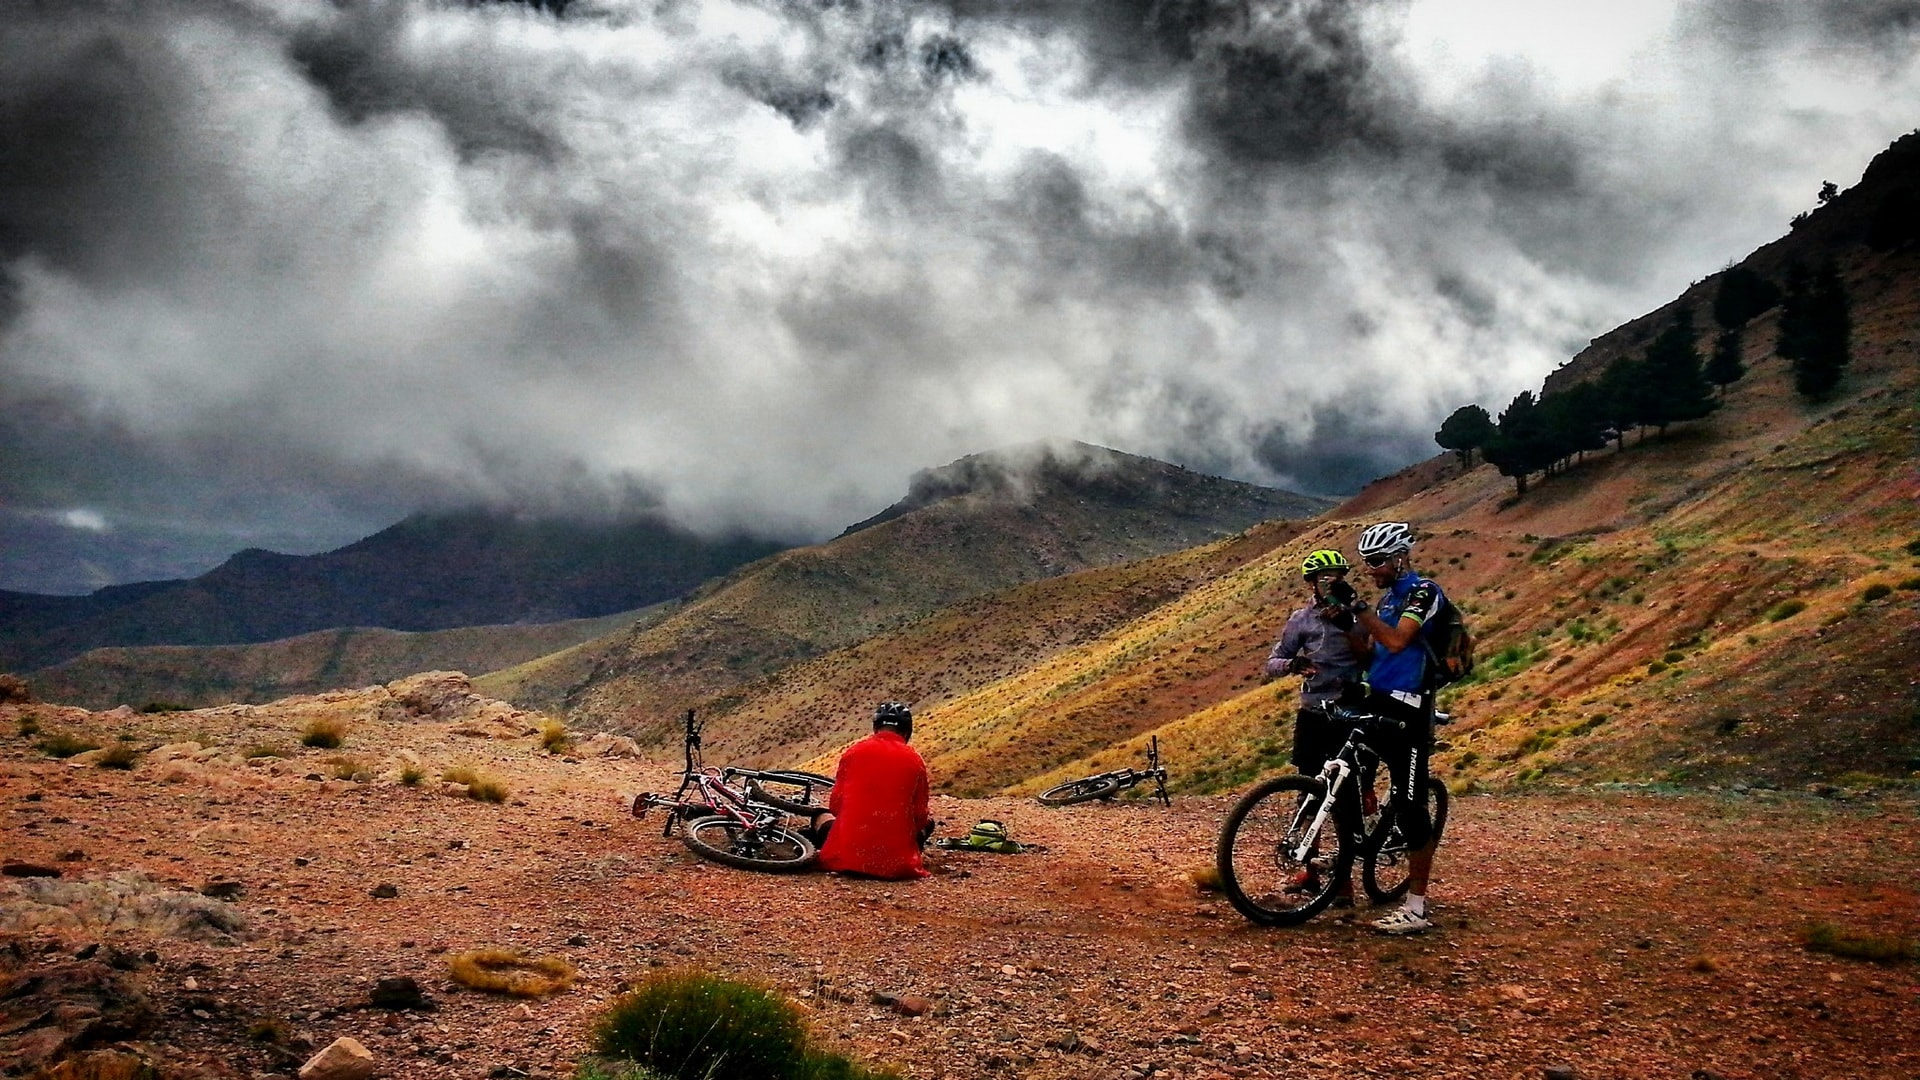 Pathfinders treks - full day atlas mountain biking day trip from marrakech